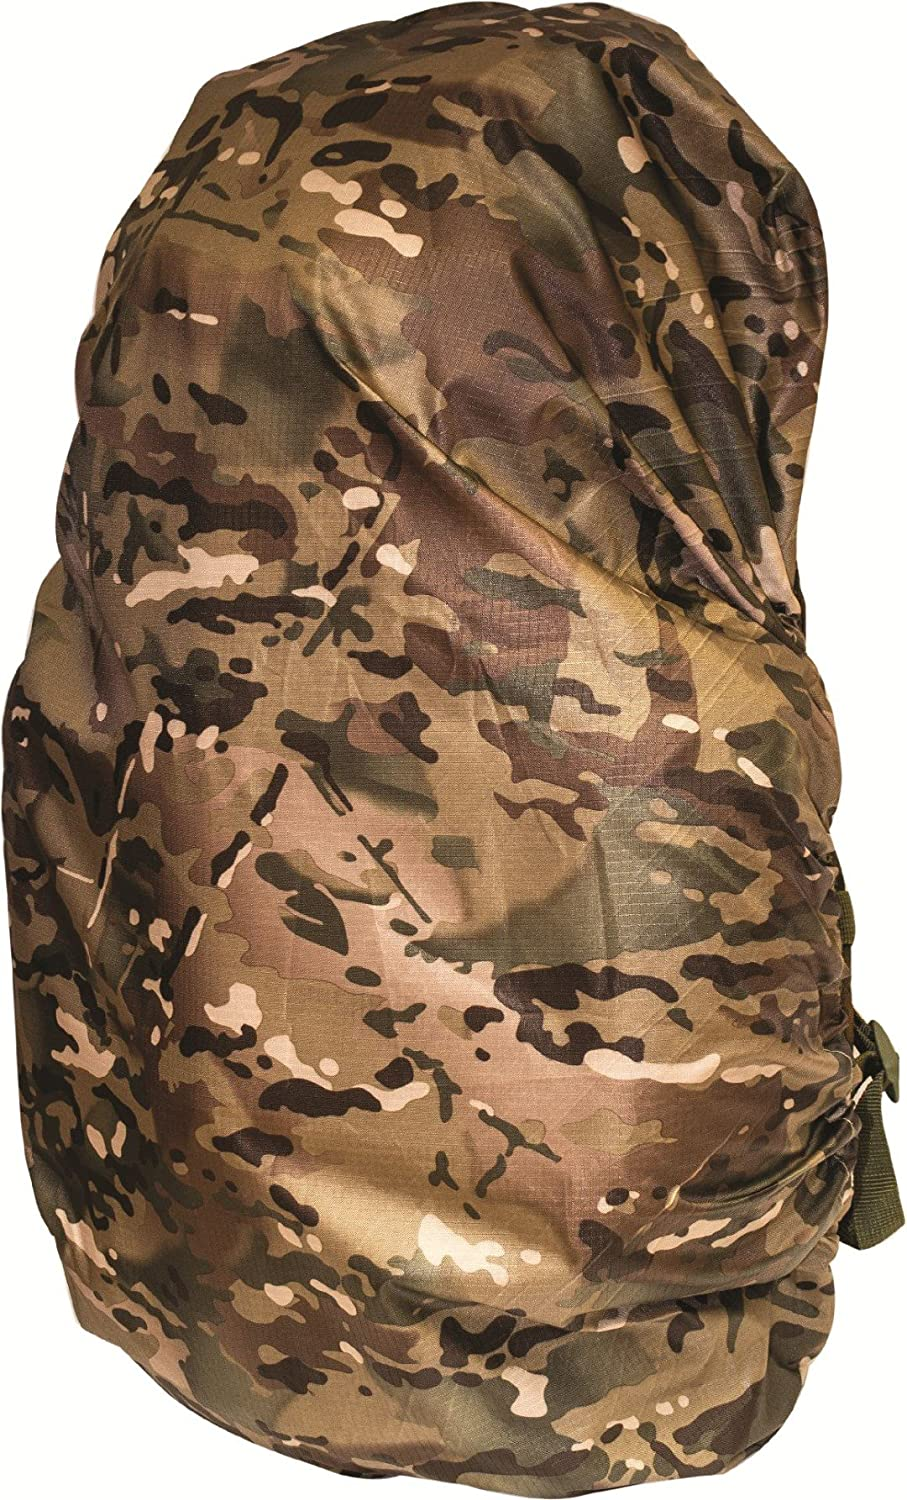 Highlander Army Combat Military Rucksack Bag Cover Waterproof Backpack HMTC Multi Camo 20-90L Pro-Force